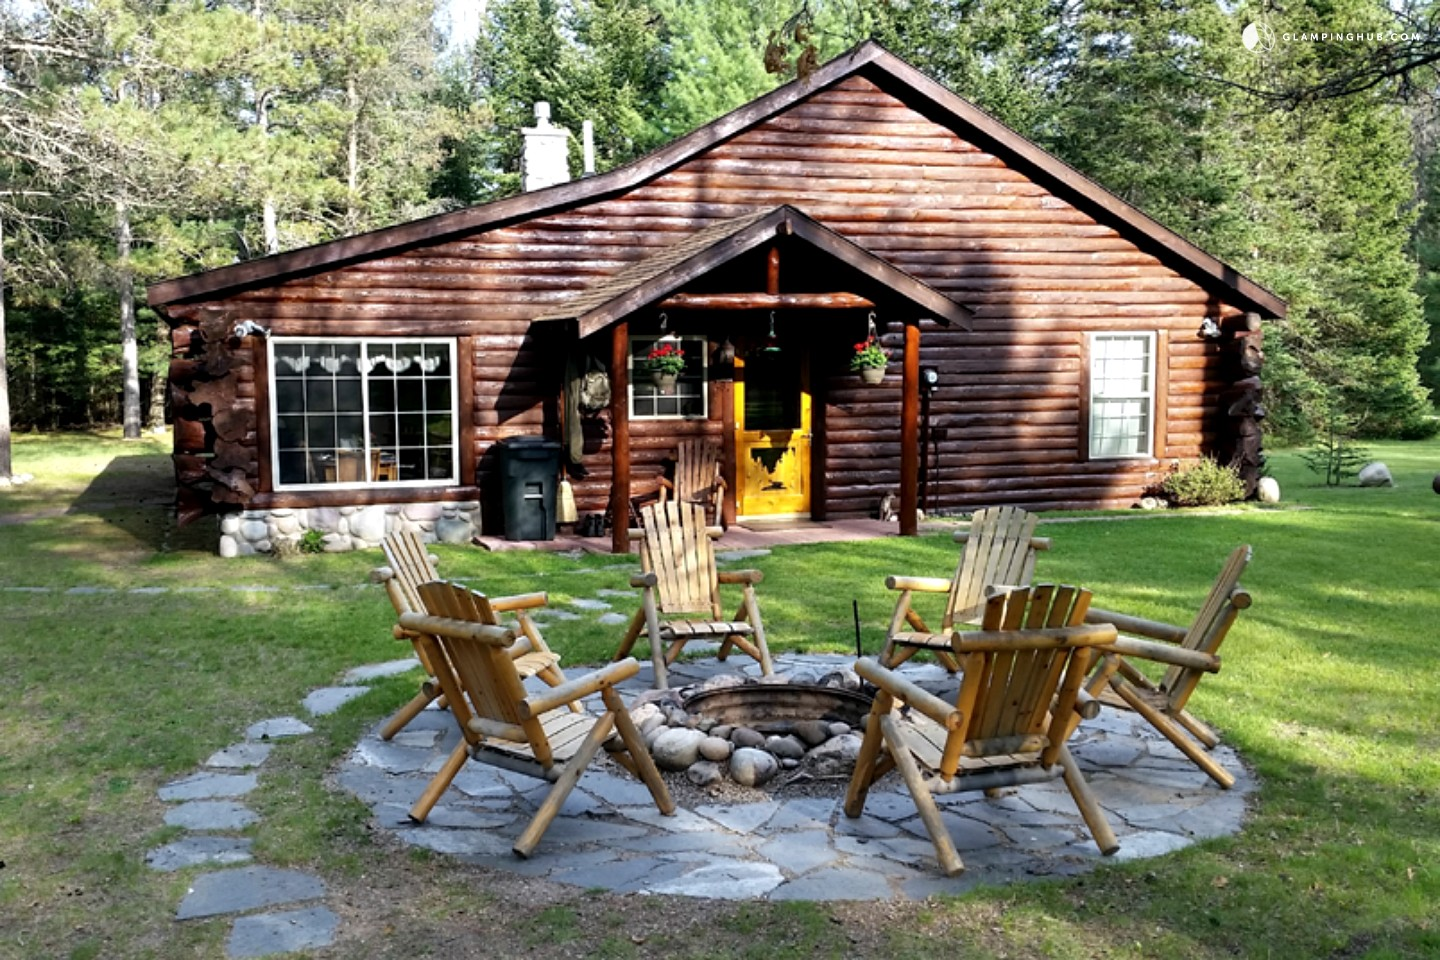 Cabin for rent on au sable river michigan for Michigan romantic cabins